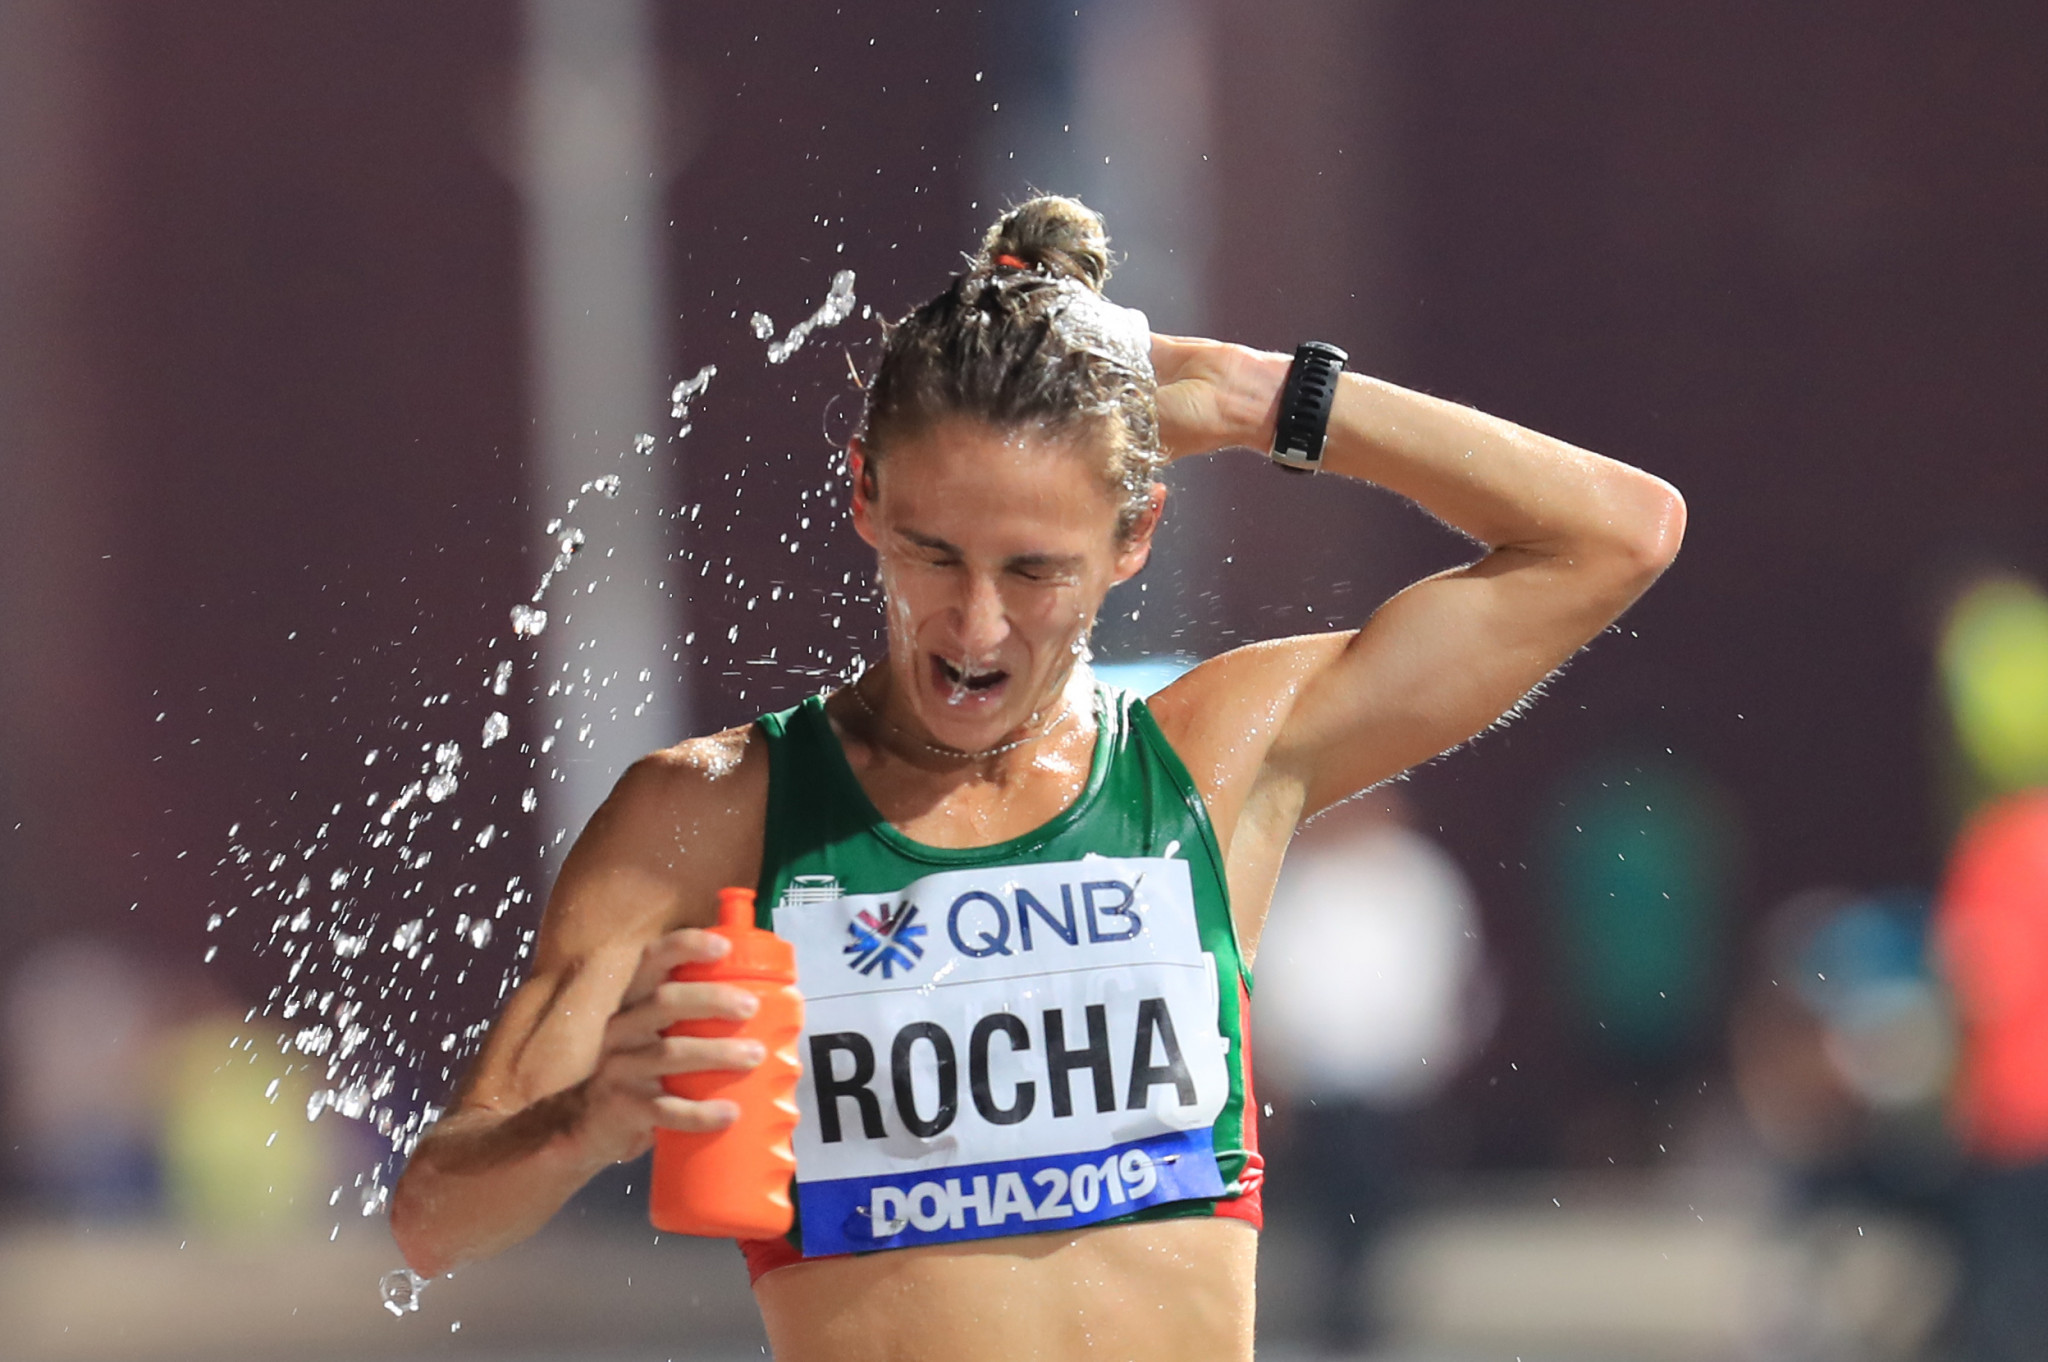 Portugal's home hero, Salomé Rocha during the World Athletics Championships marathon in Qatar last year ©Getty Images